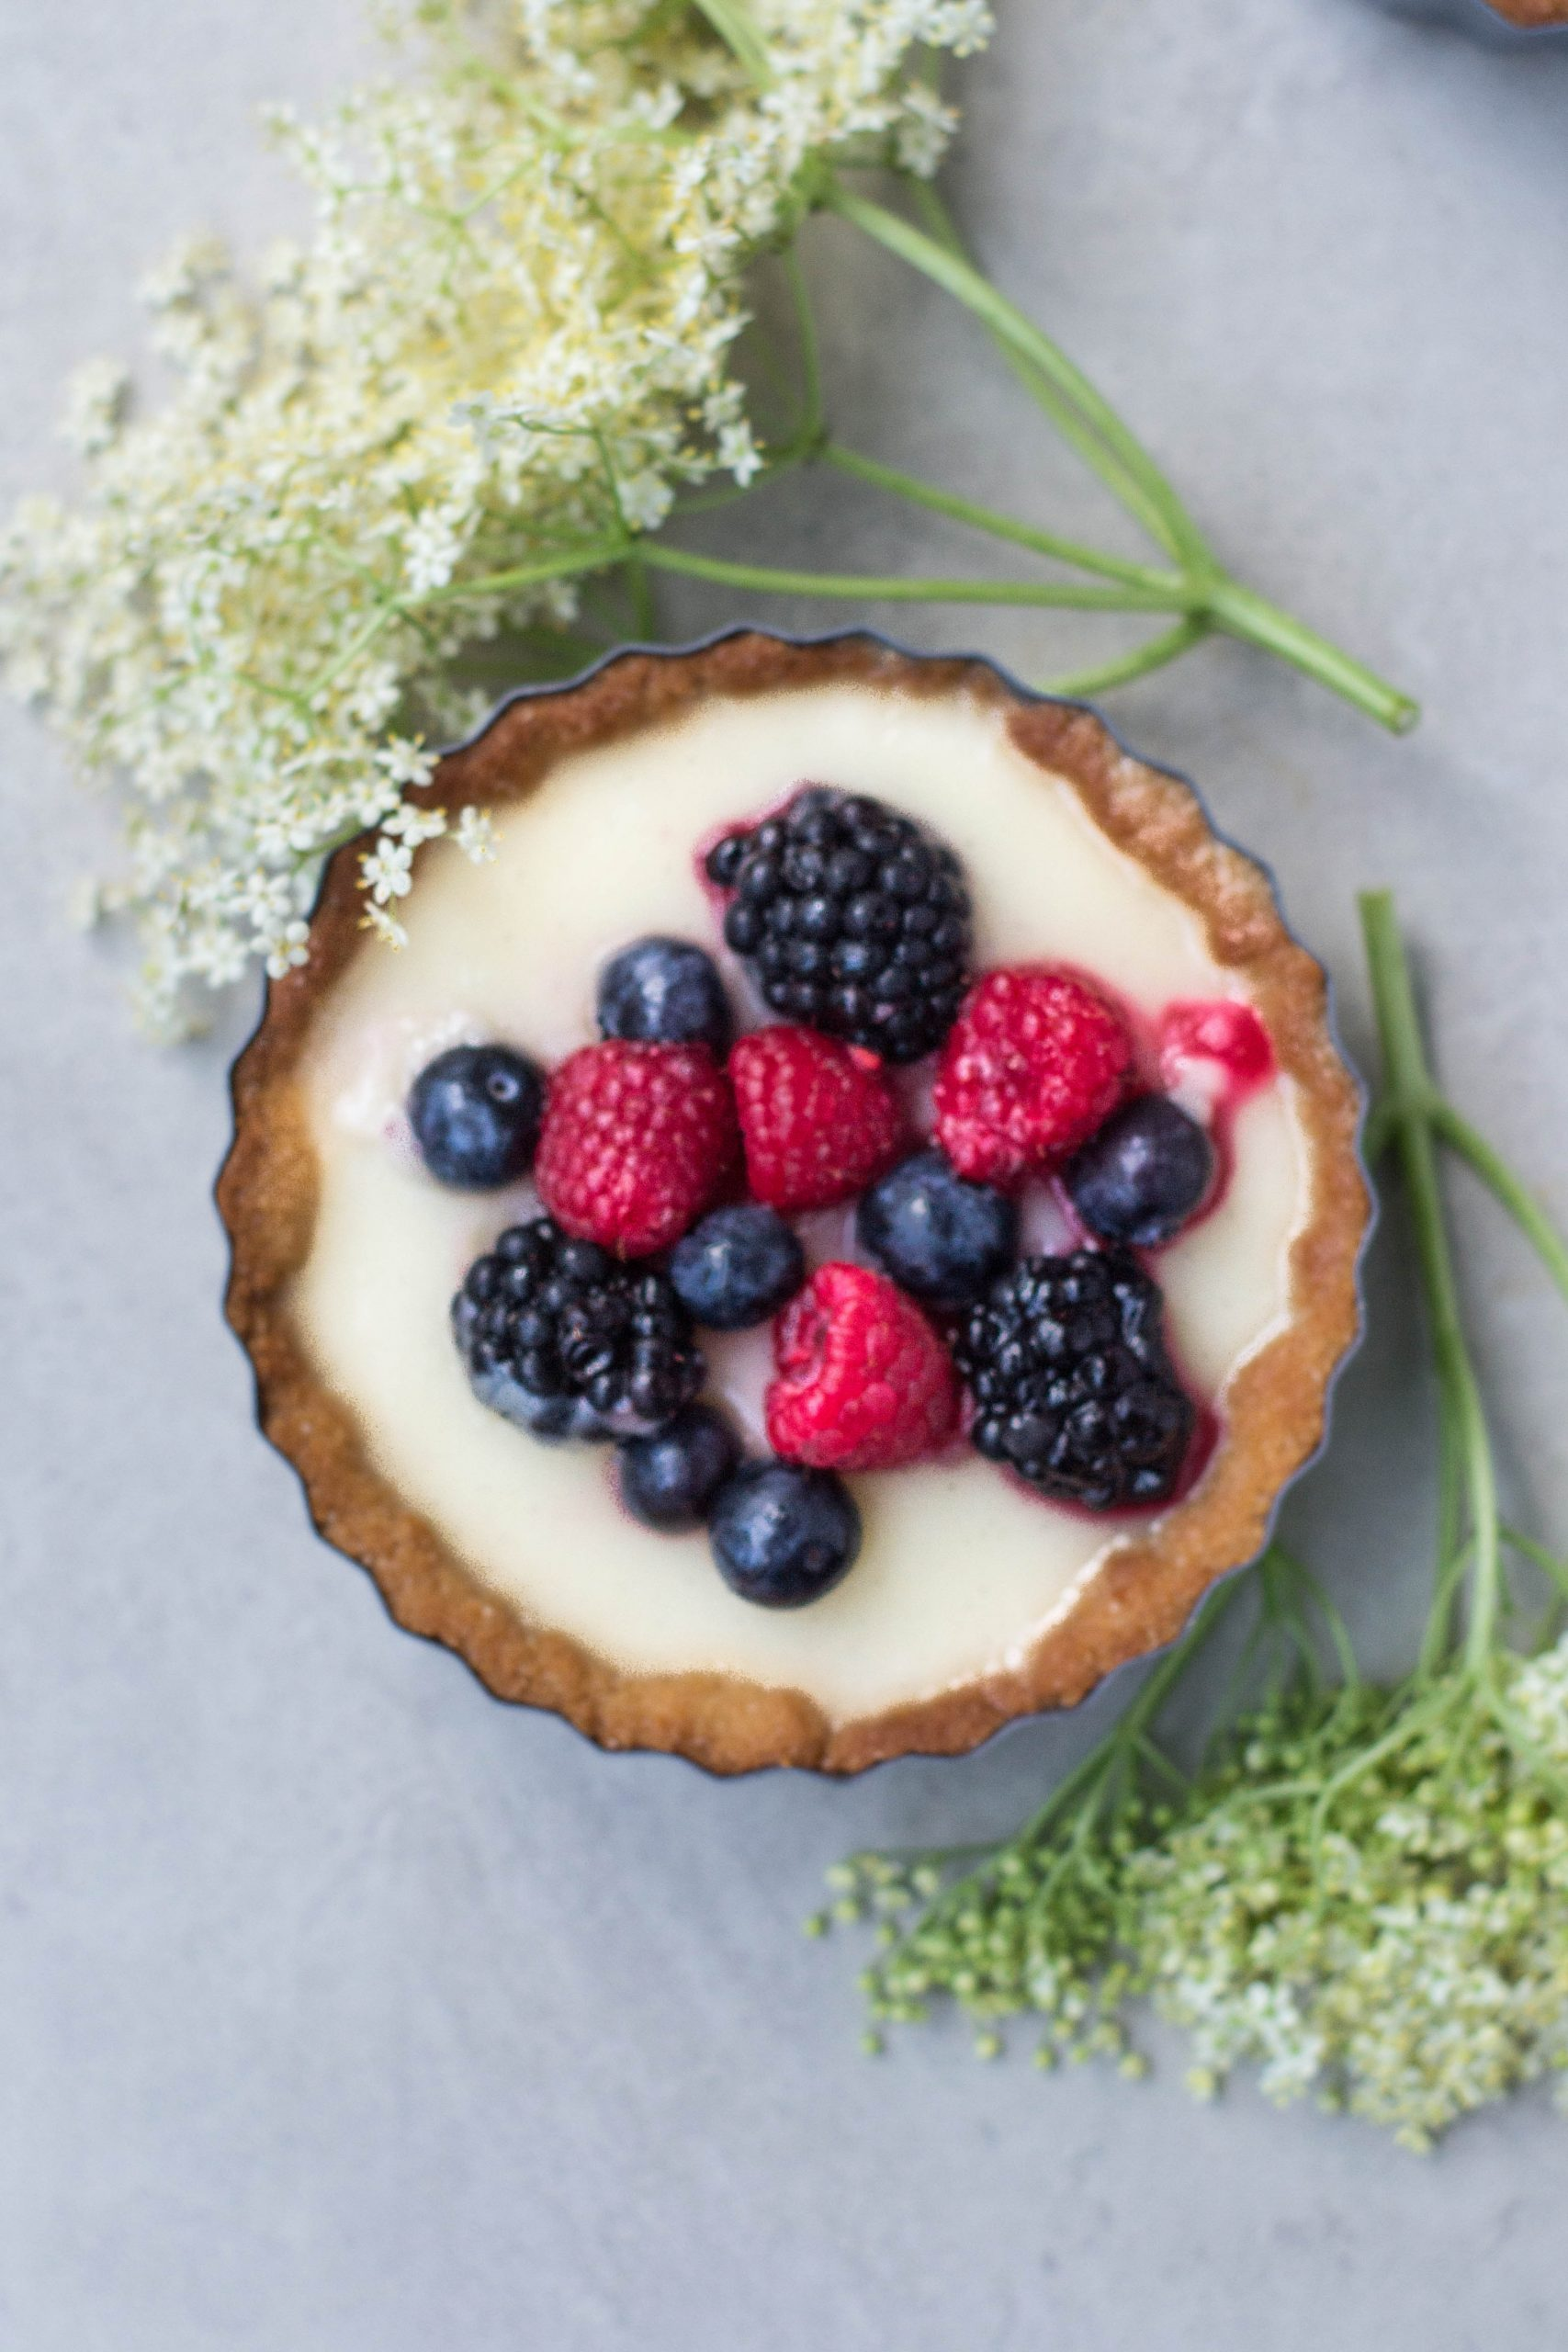 Lemon & Berry Tarts (Vegan + GF)